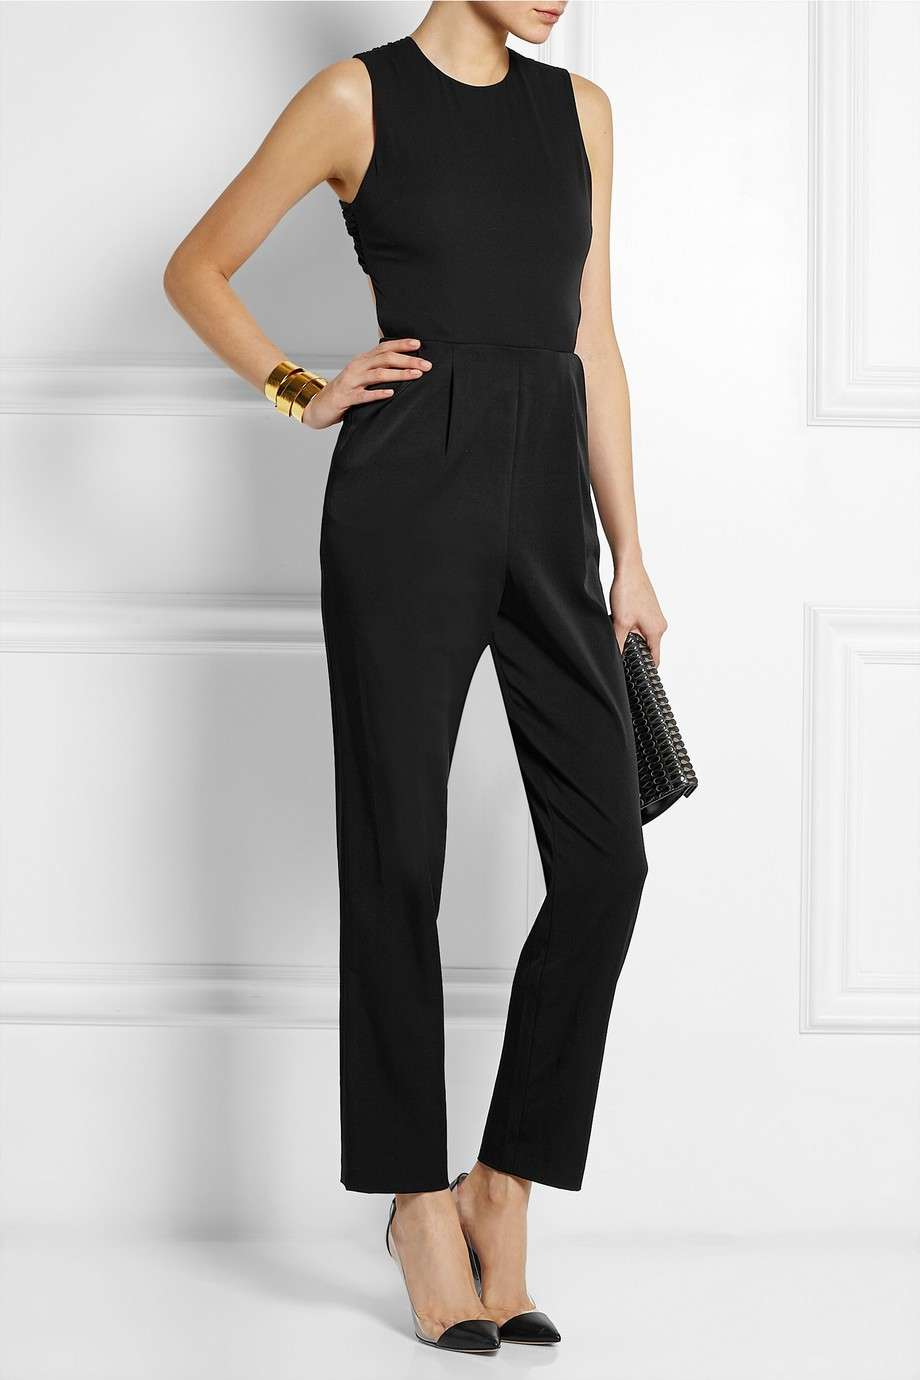 Jumpsuit a schiena nuda Alice and Olivia